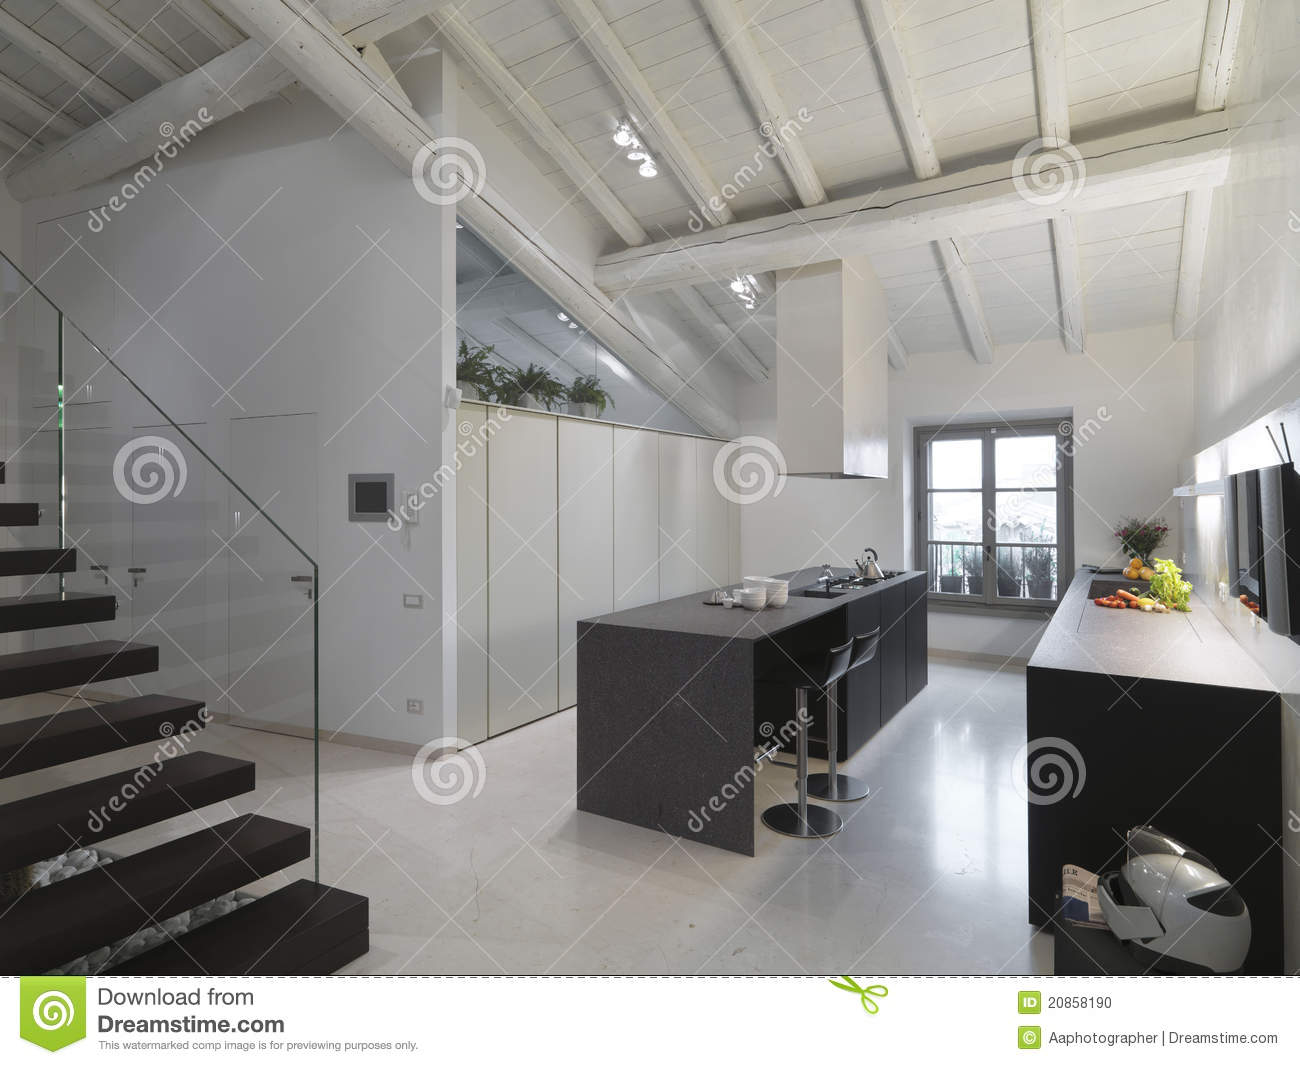 Moderne keuken in de zolder stock foto afbeelding 20858190 for Authentic chinese cuisine for the contemporary kitchen